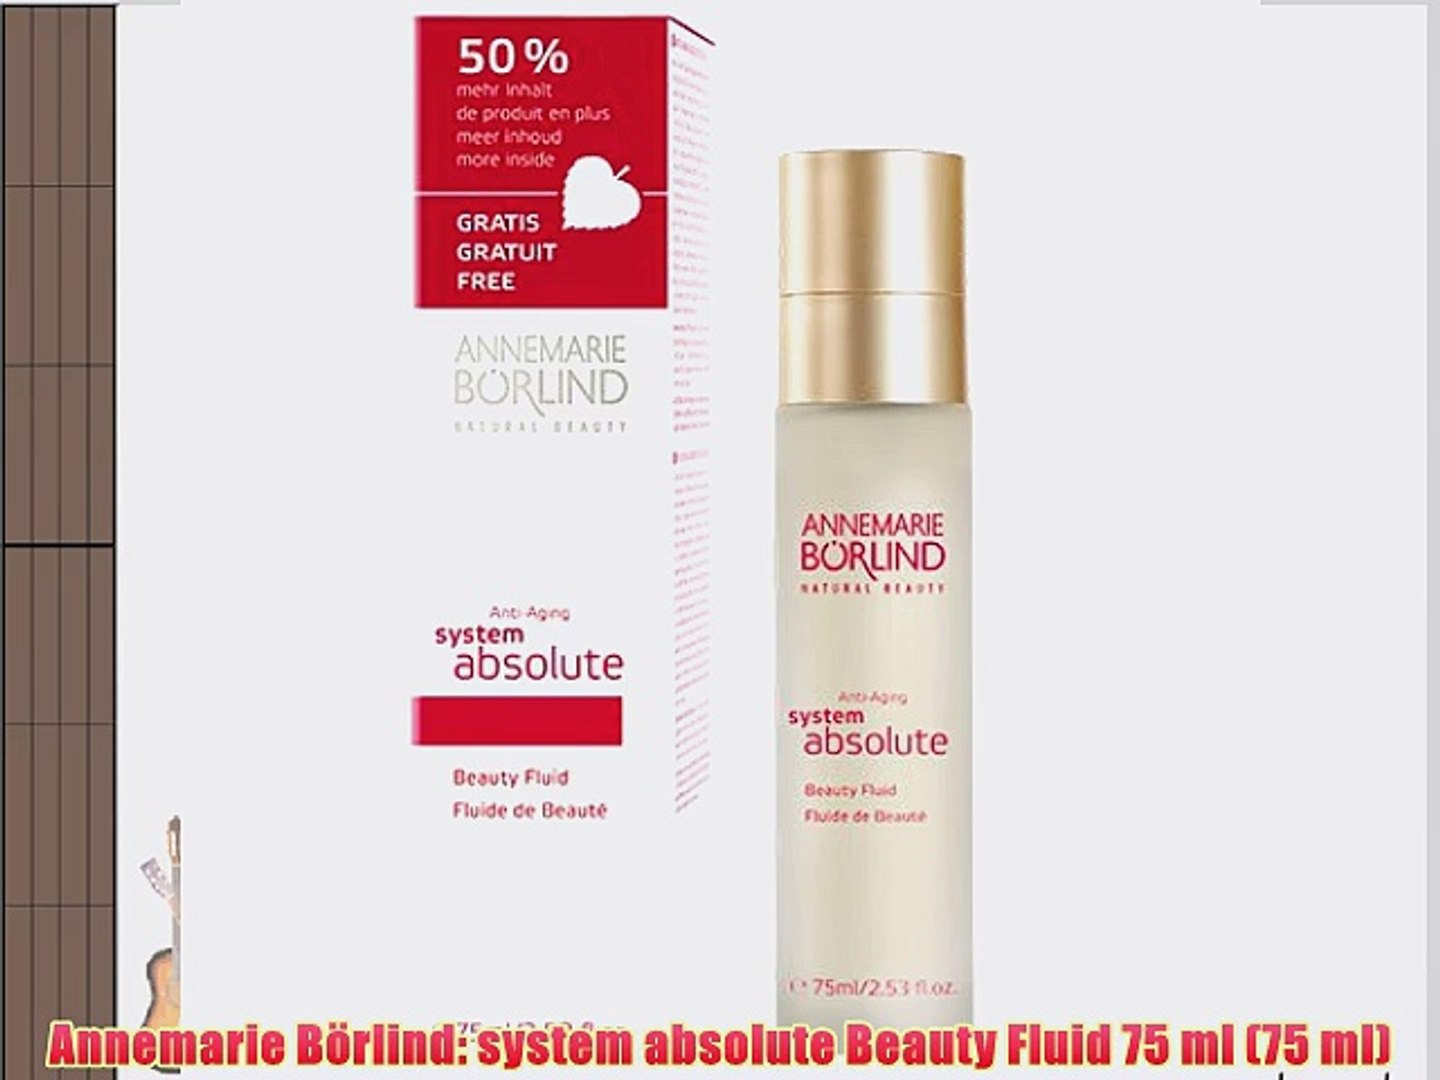 Annemarie B?rlind: system absolute Beauty Fluid 75 ml (75 ml)